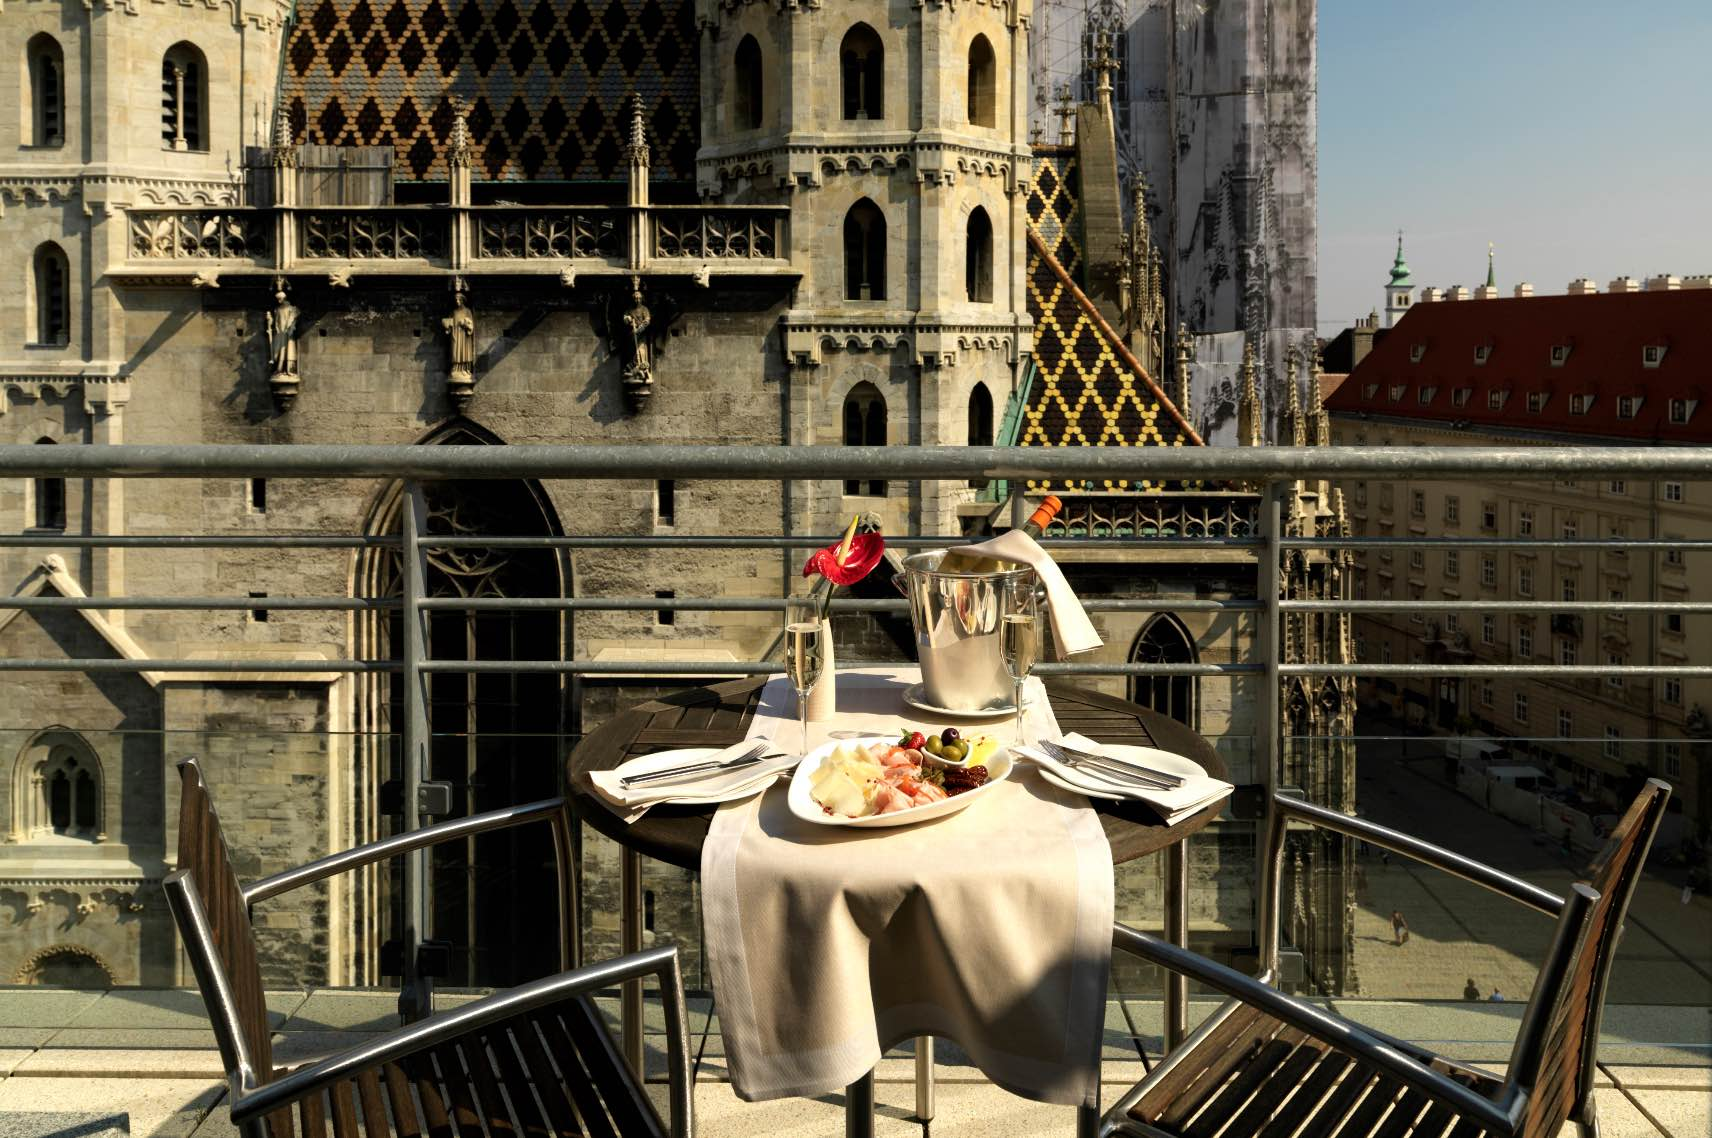 Hotel am Stephansplatz - A Perfect Hotel View in Vienna1.jpg